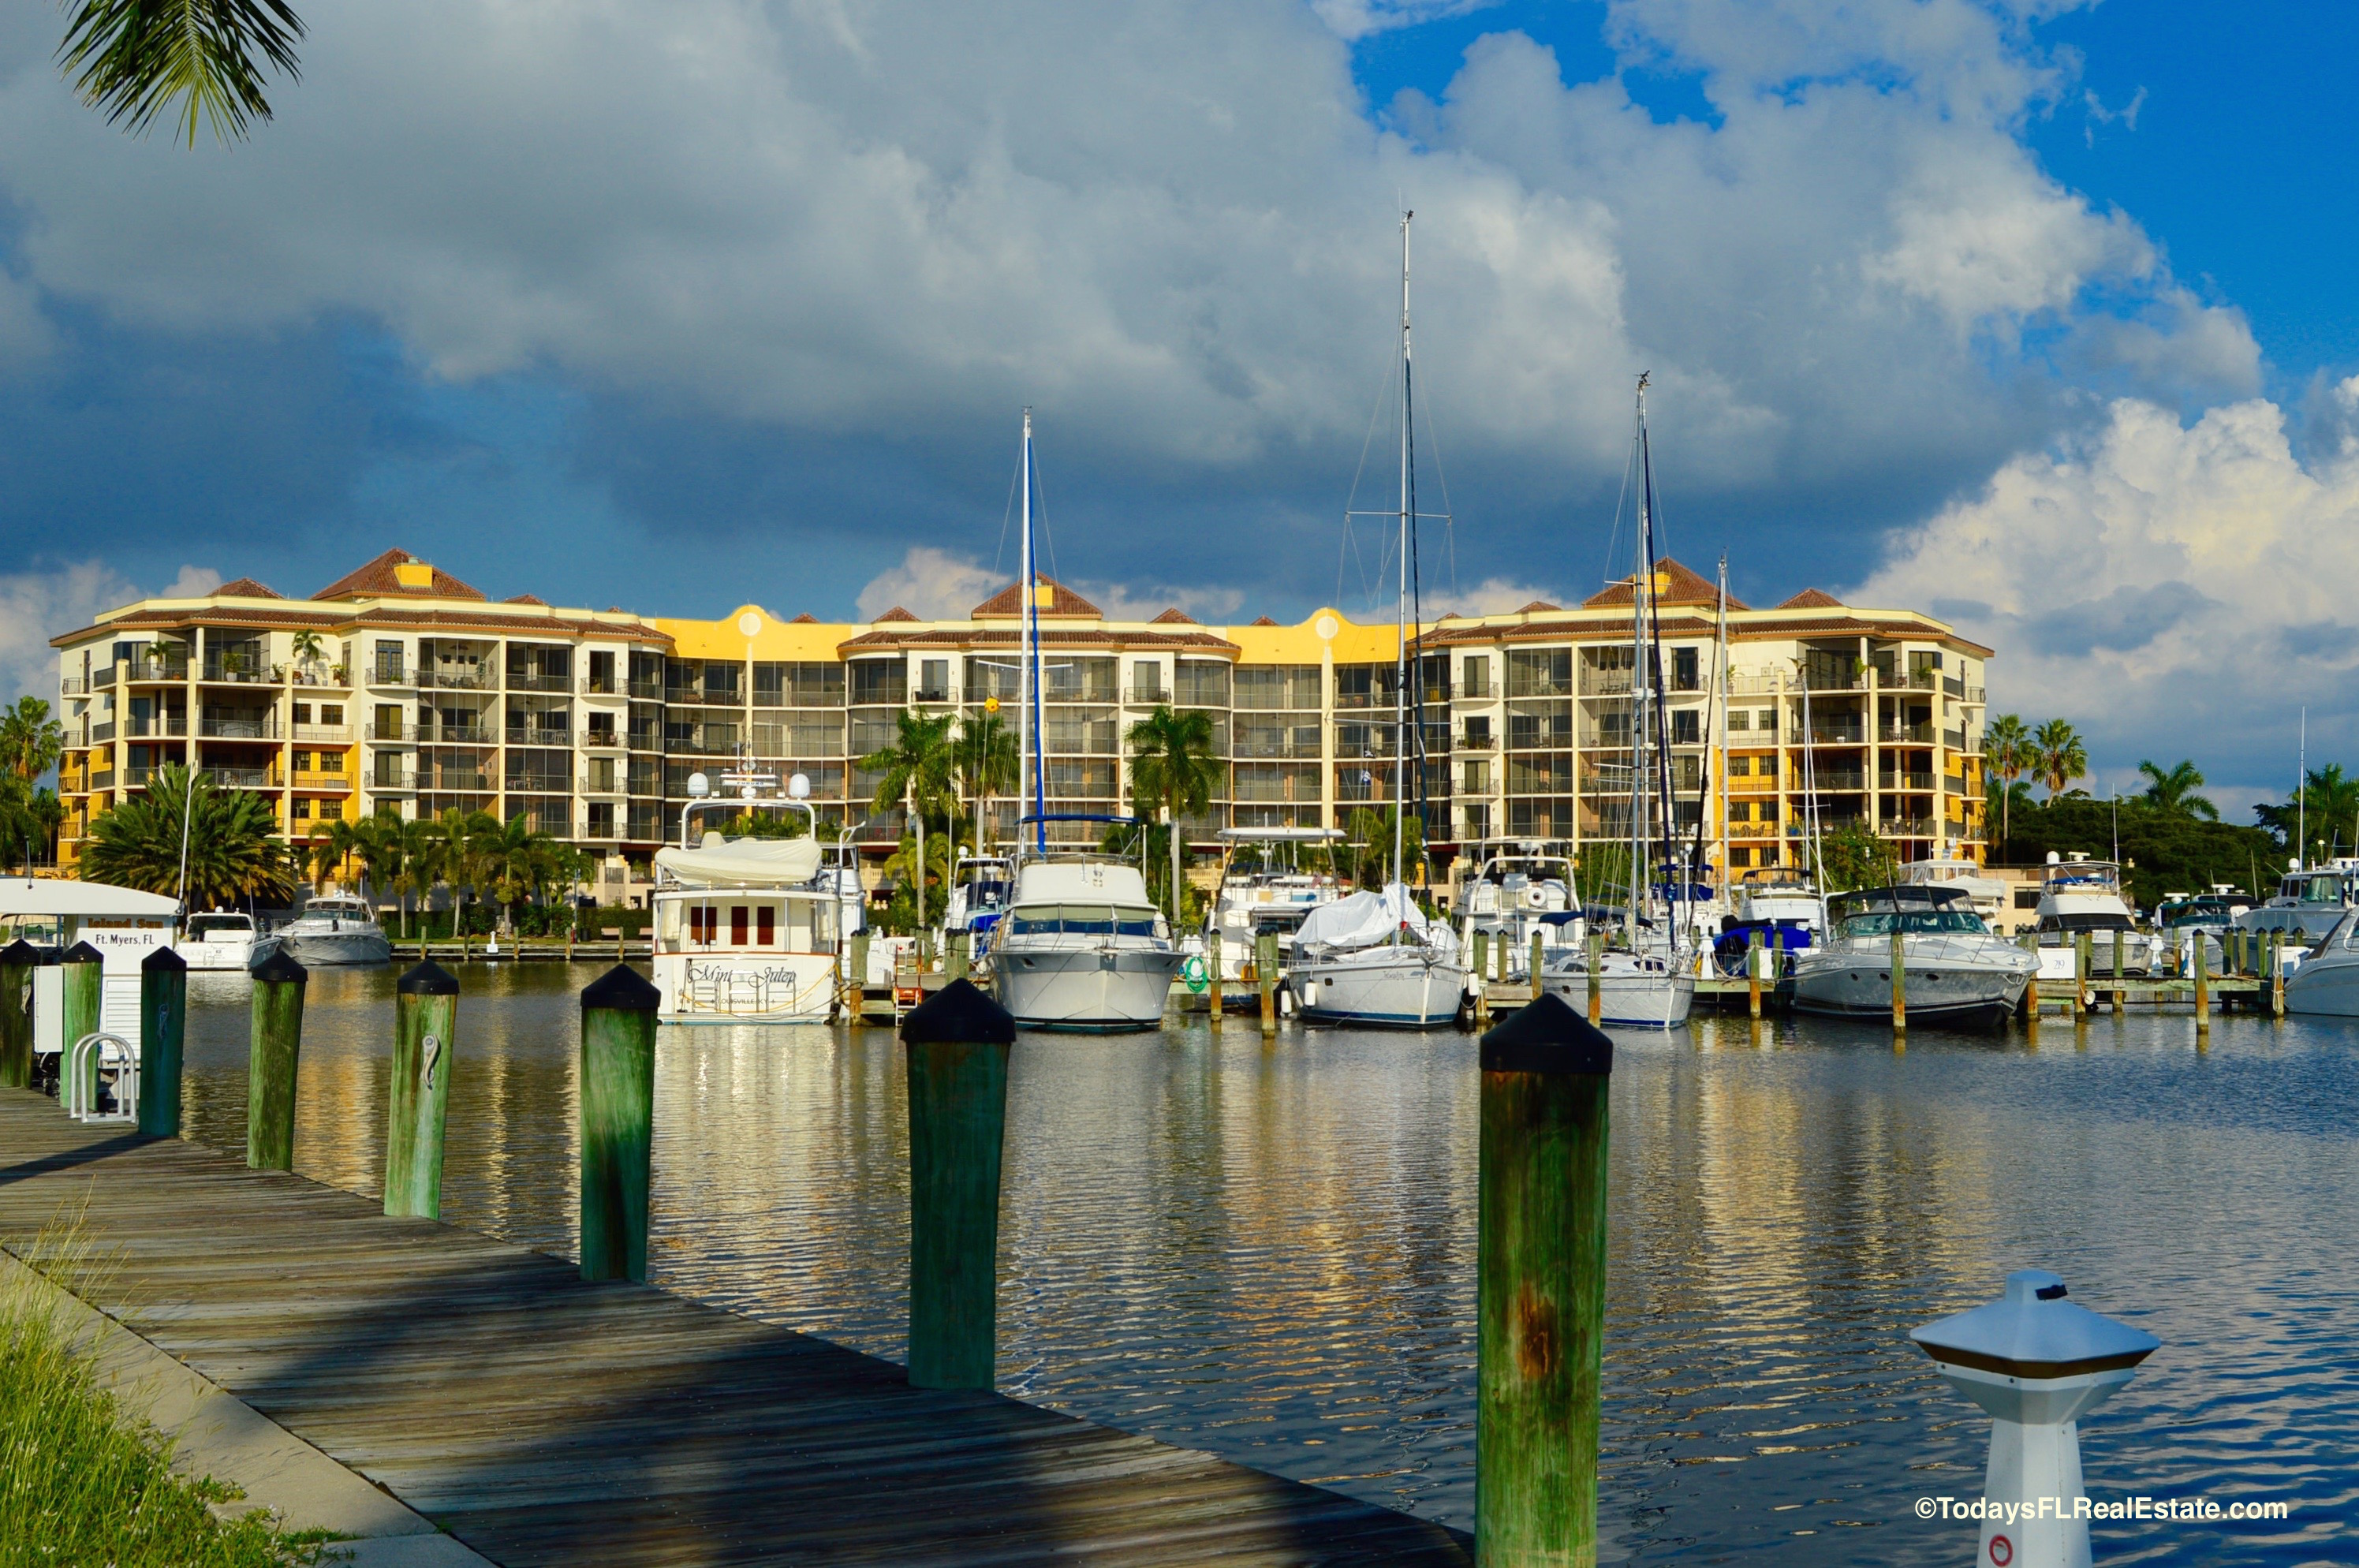 Mid rise condos cape coral for sale, gulf access condos cape coral, southwest florida waterfront condos, cape coral condos for sale